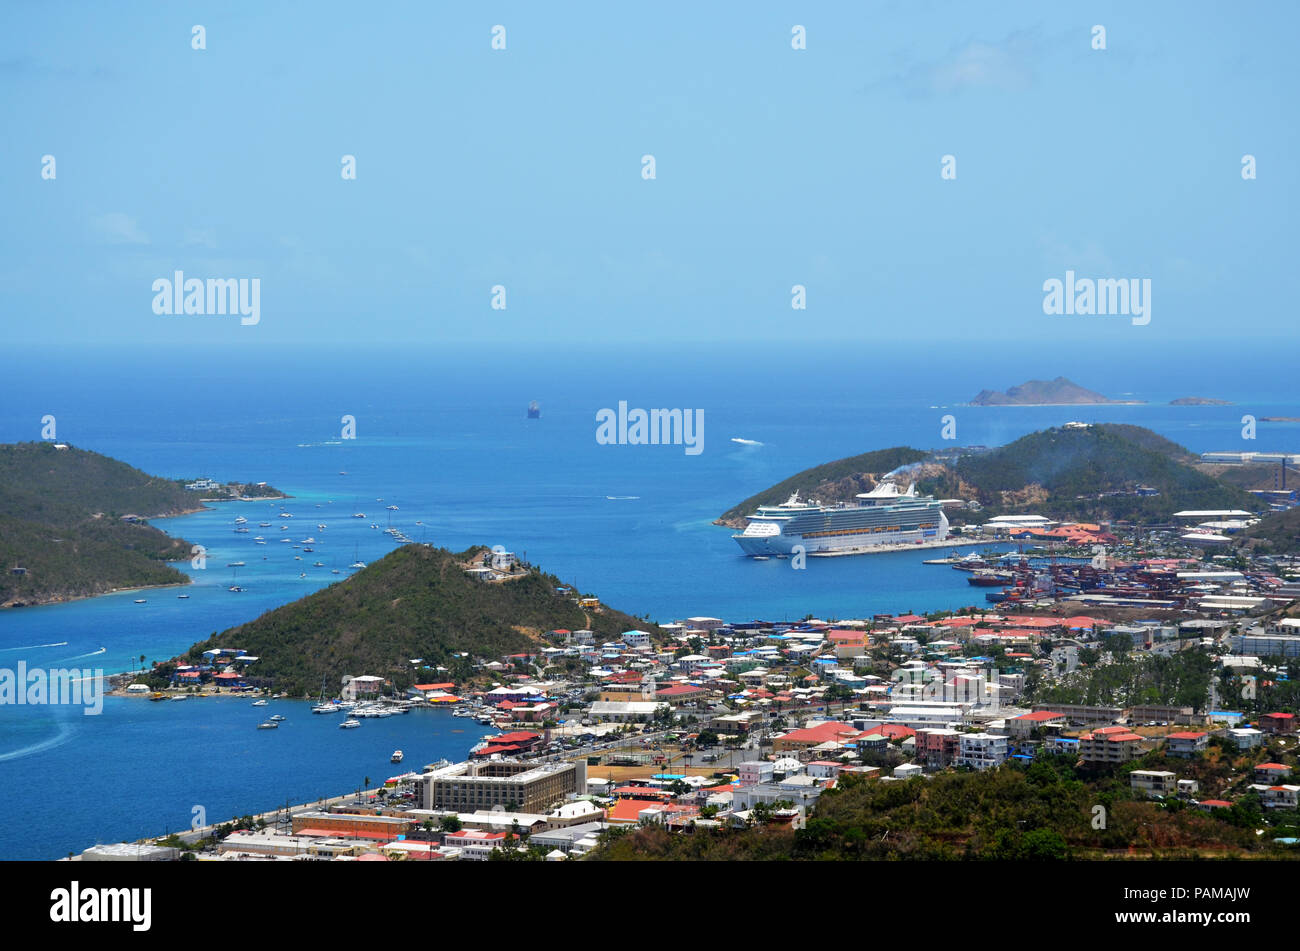 Charlotte Amalie, St. Thomas USVI, the capital of U.S. Virgin Islands Stock Photo